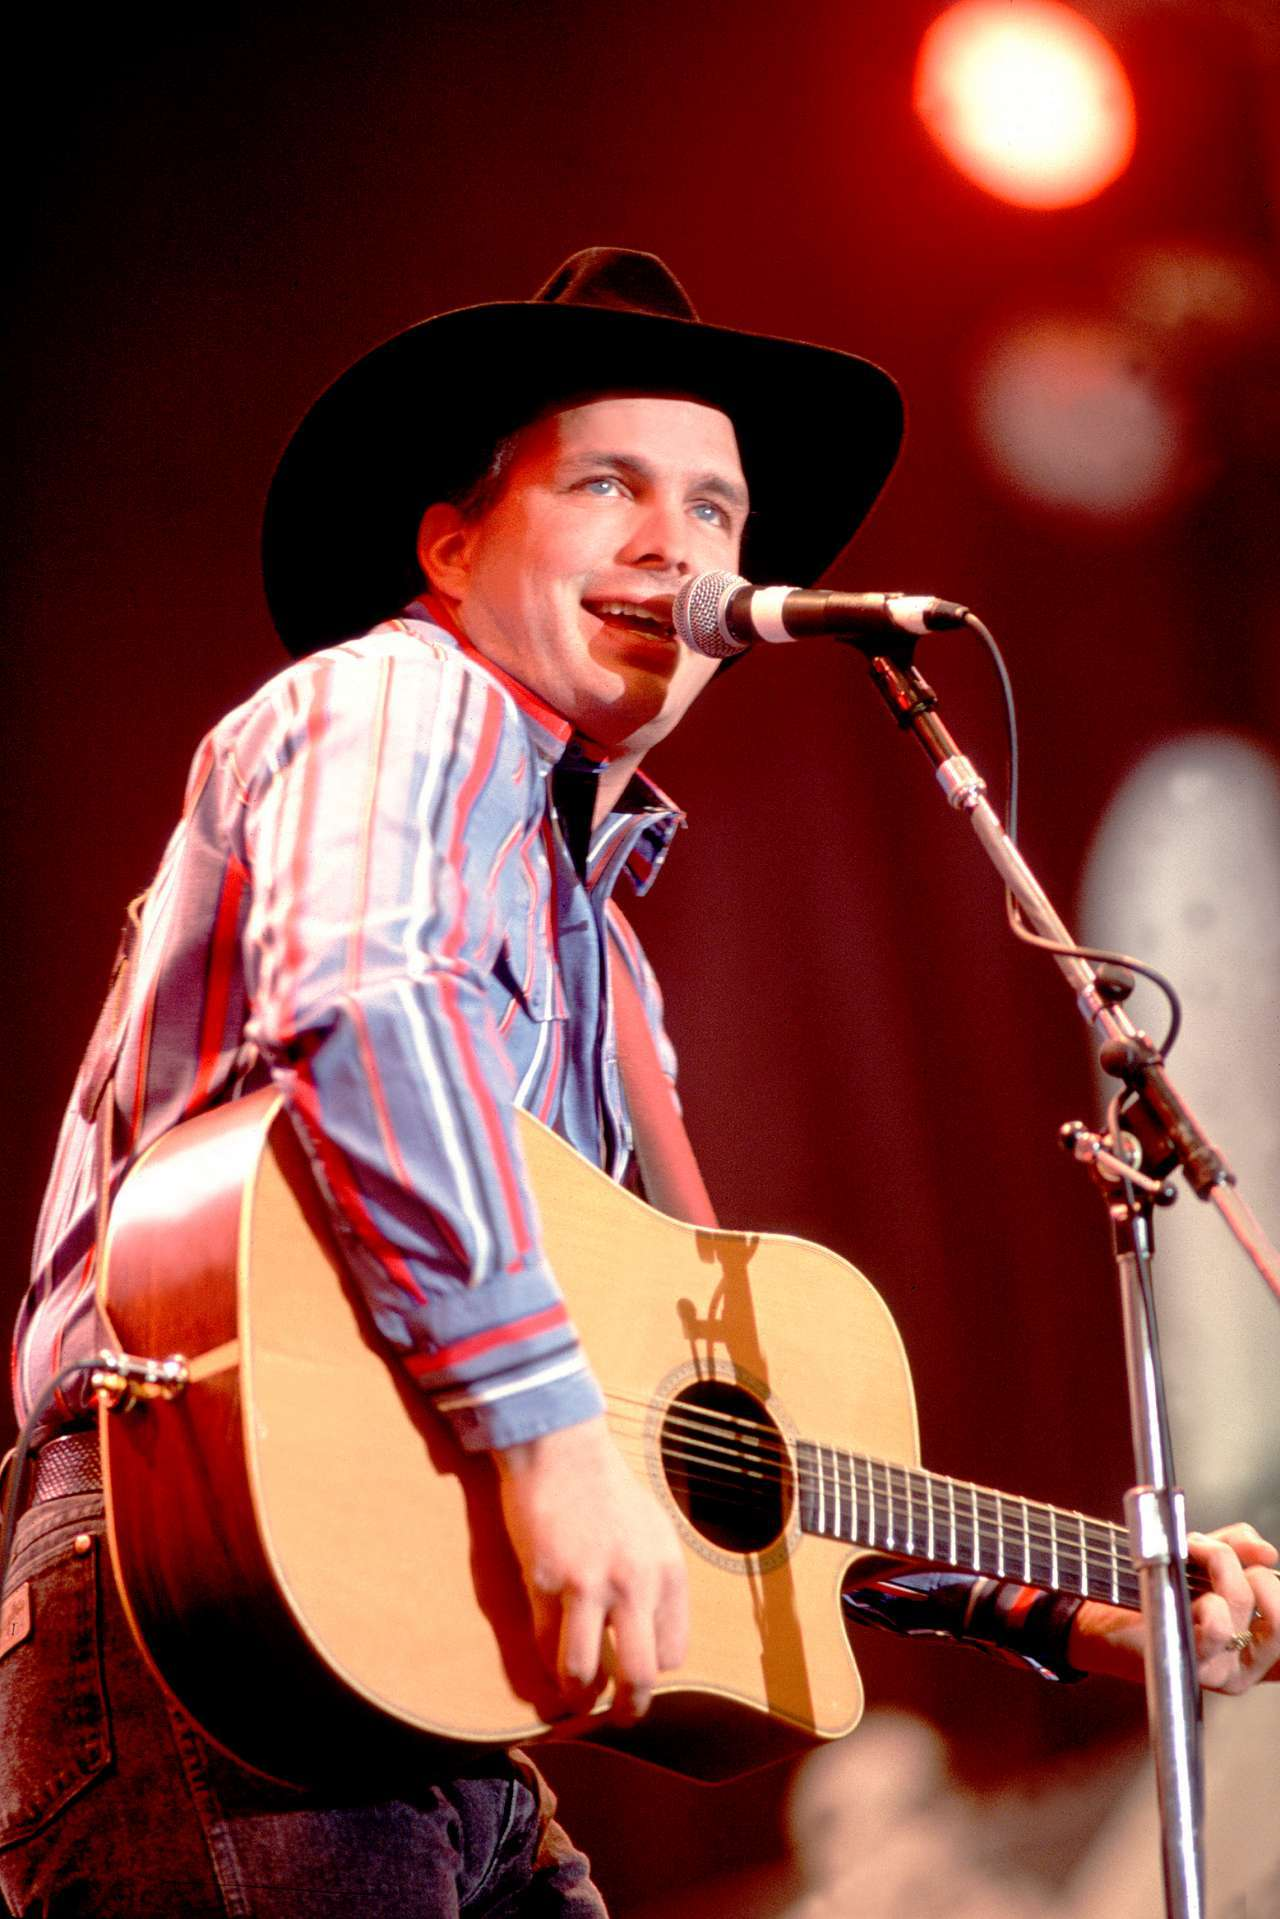 garth brooks Paul Natkin